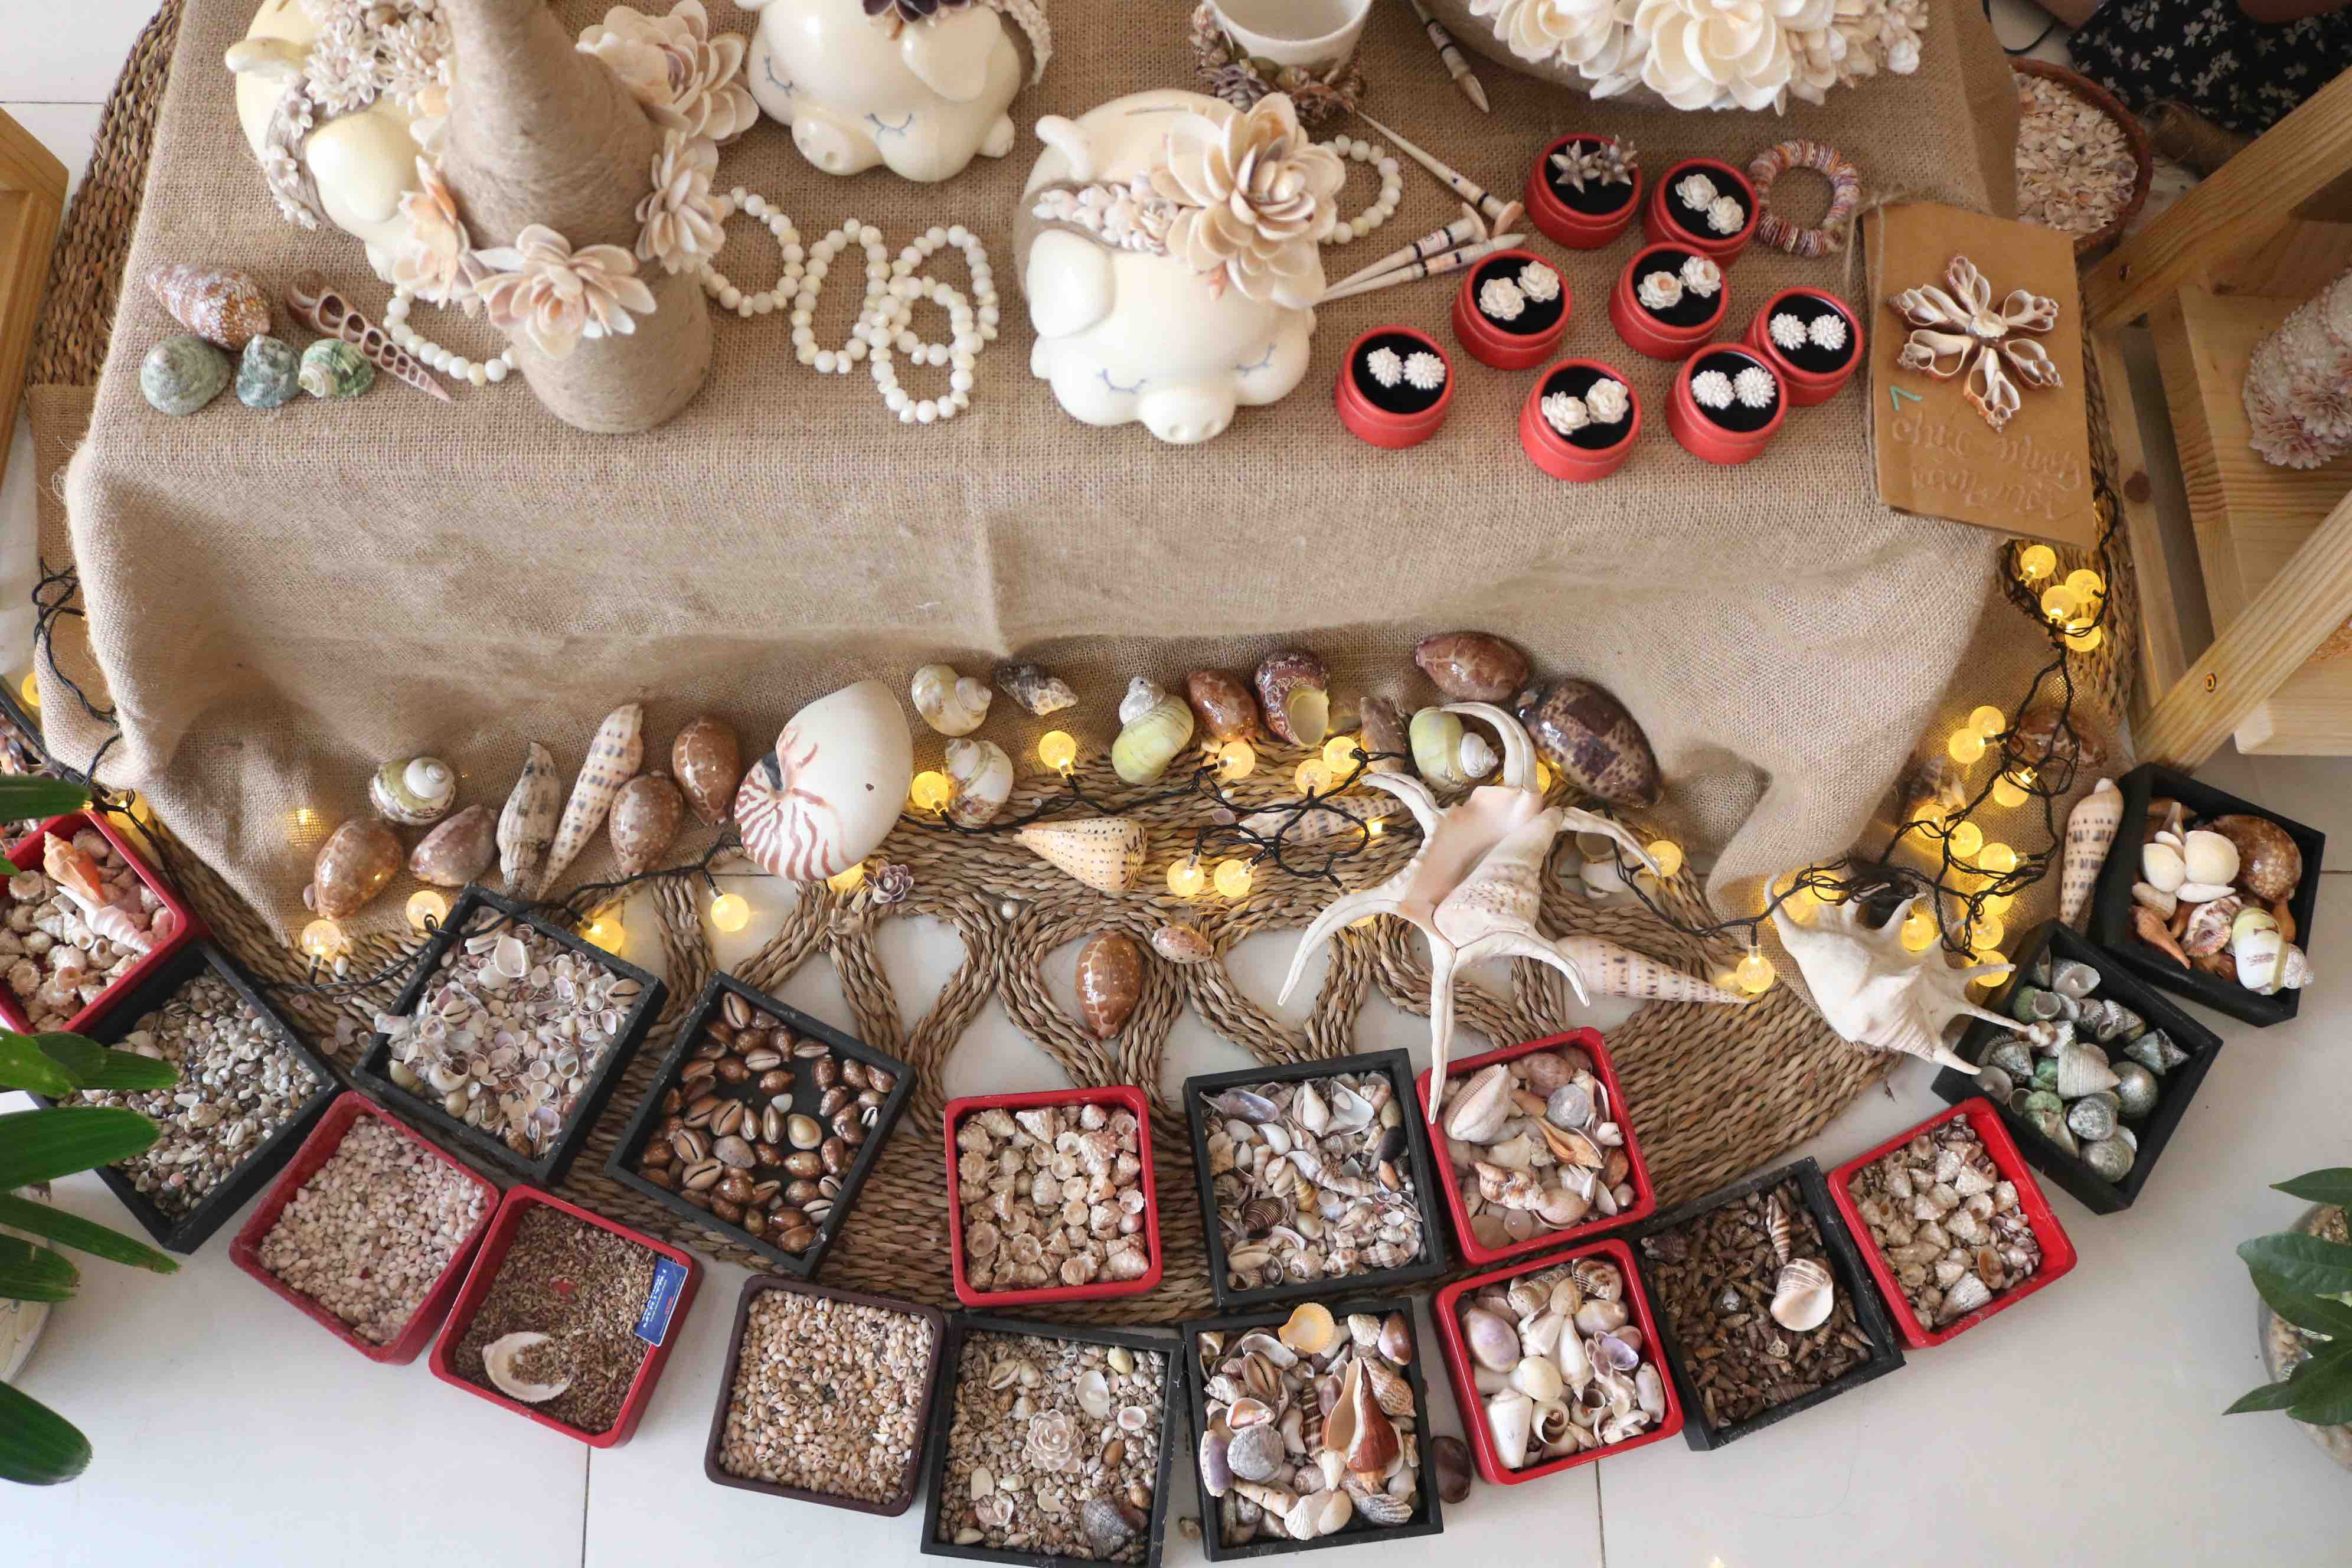 Different types of shells are seen at Tran Thi Ngoc Hieu's showroom in District 1, Ho Chi Minh City. Photo: Hoang An / Tuoi Tre